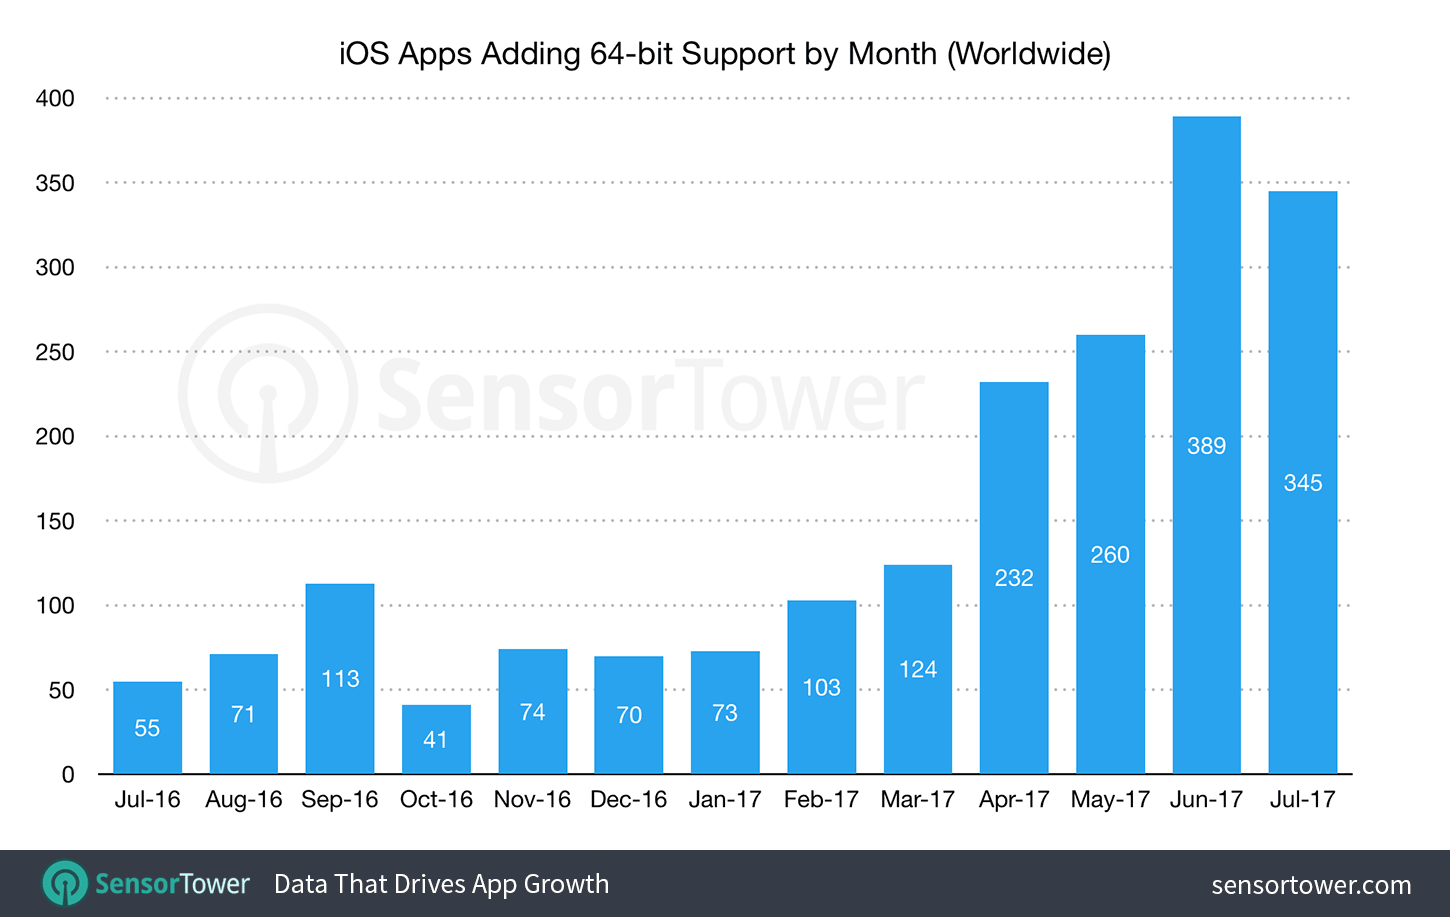 64-bit iOS App Updates Have Increased by Almost 230% in the Past Six Months